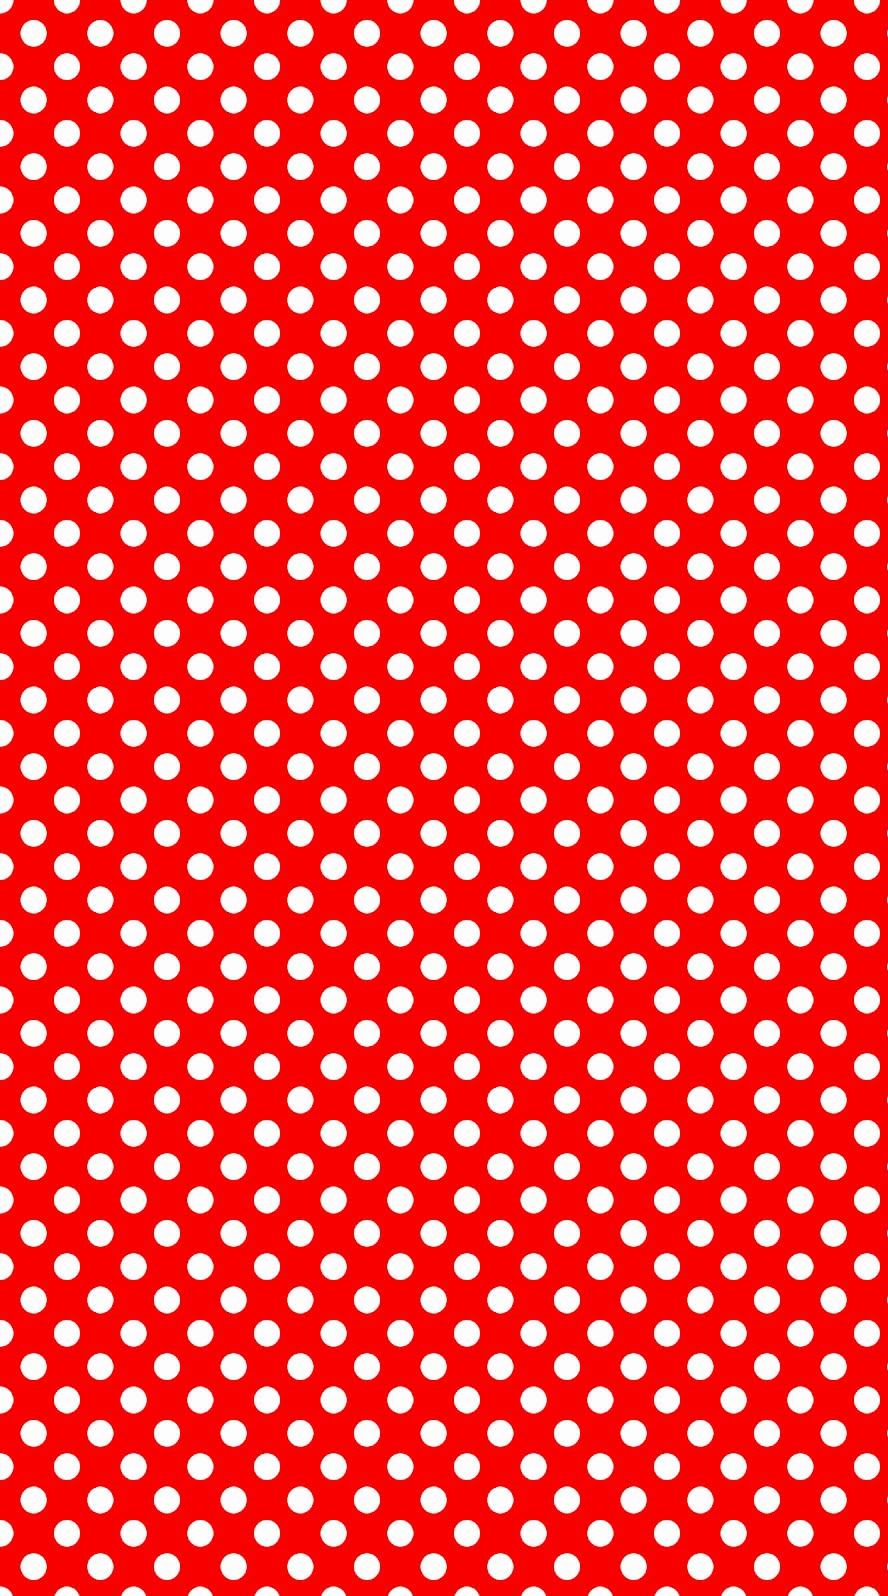 888x1596 Free download Red and White Polka Dot Background by ...